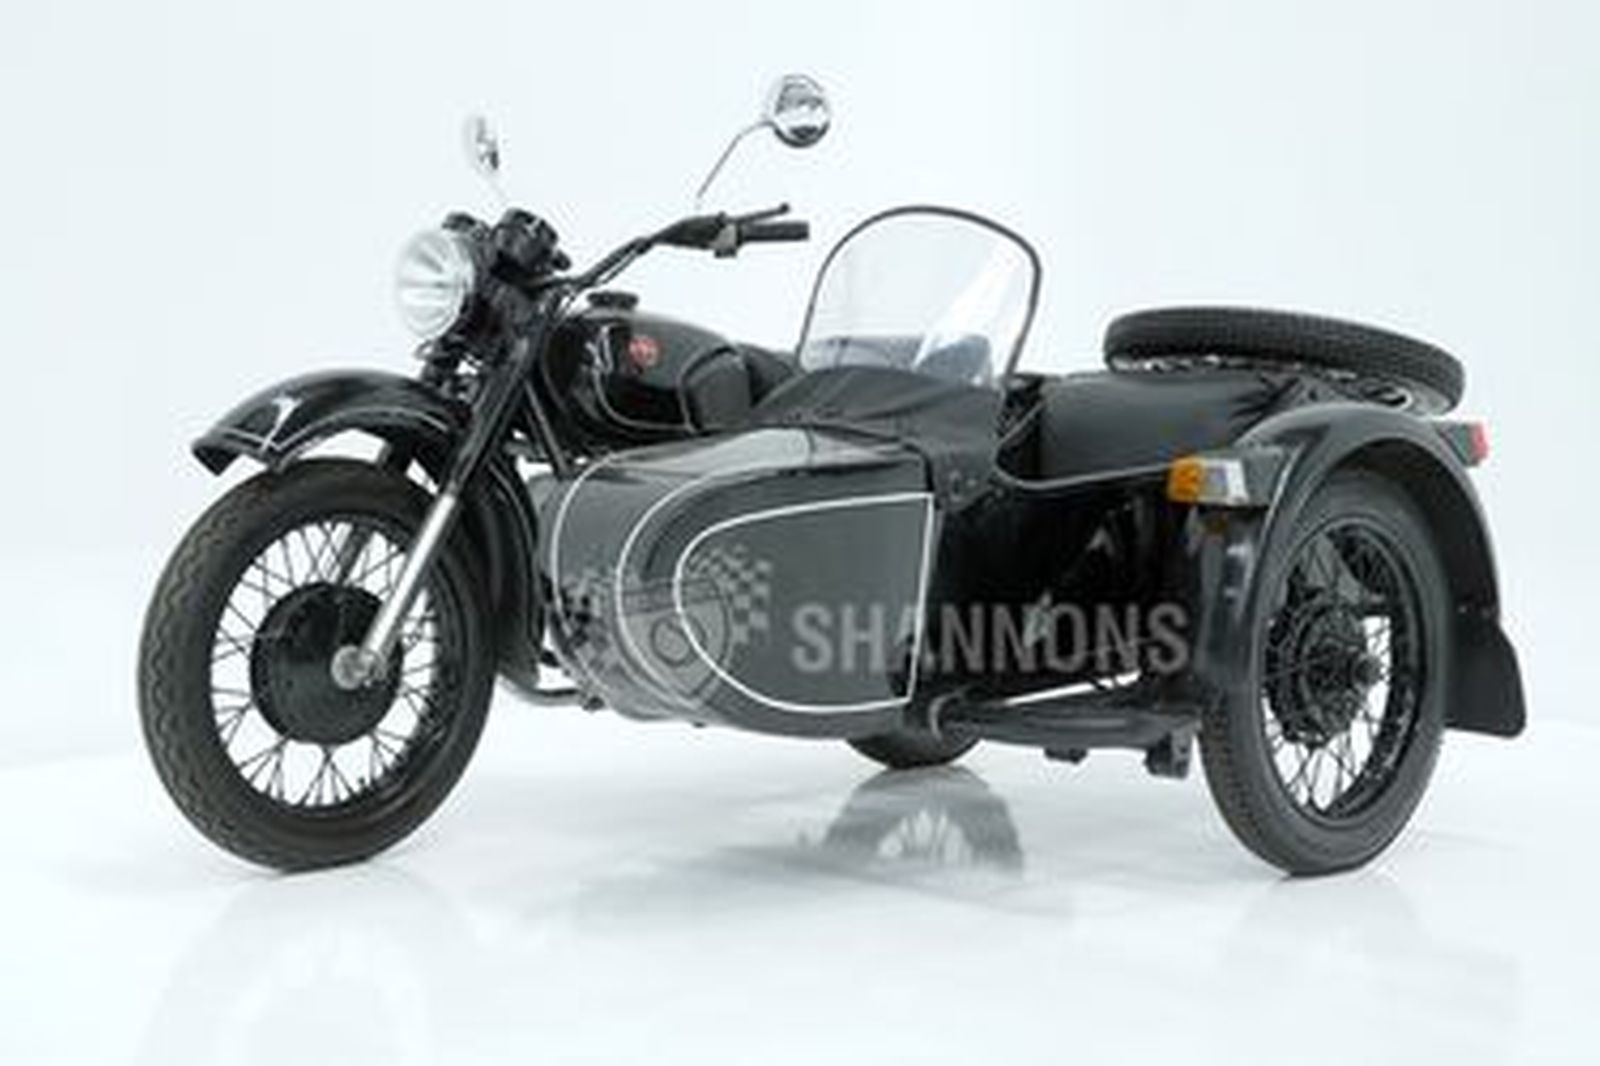 DNEPR (Rocket) MT11S Motorcycle with Sidecar